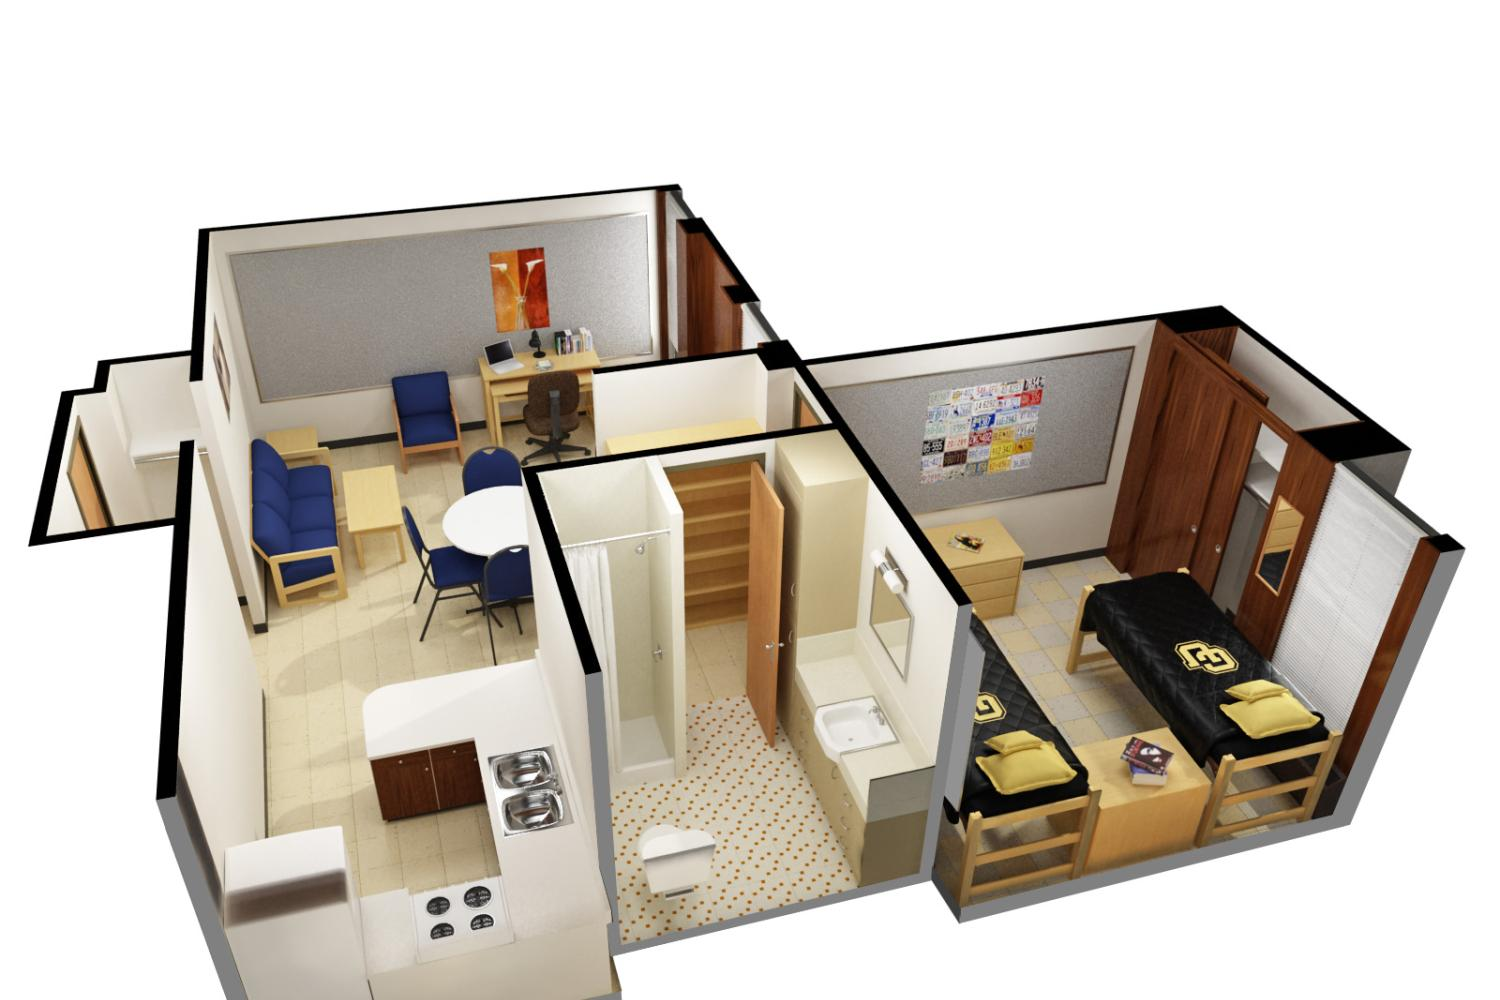 3D image of Stearns East two person apartment